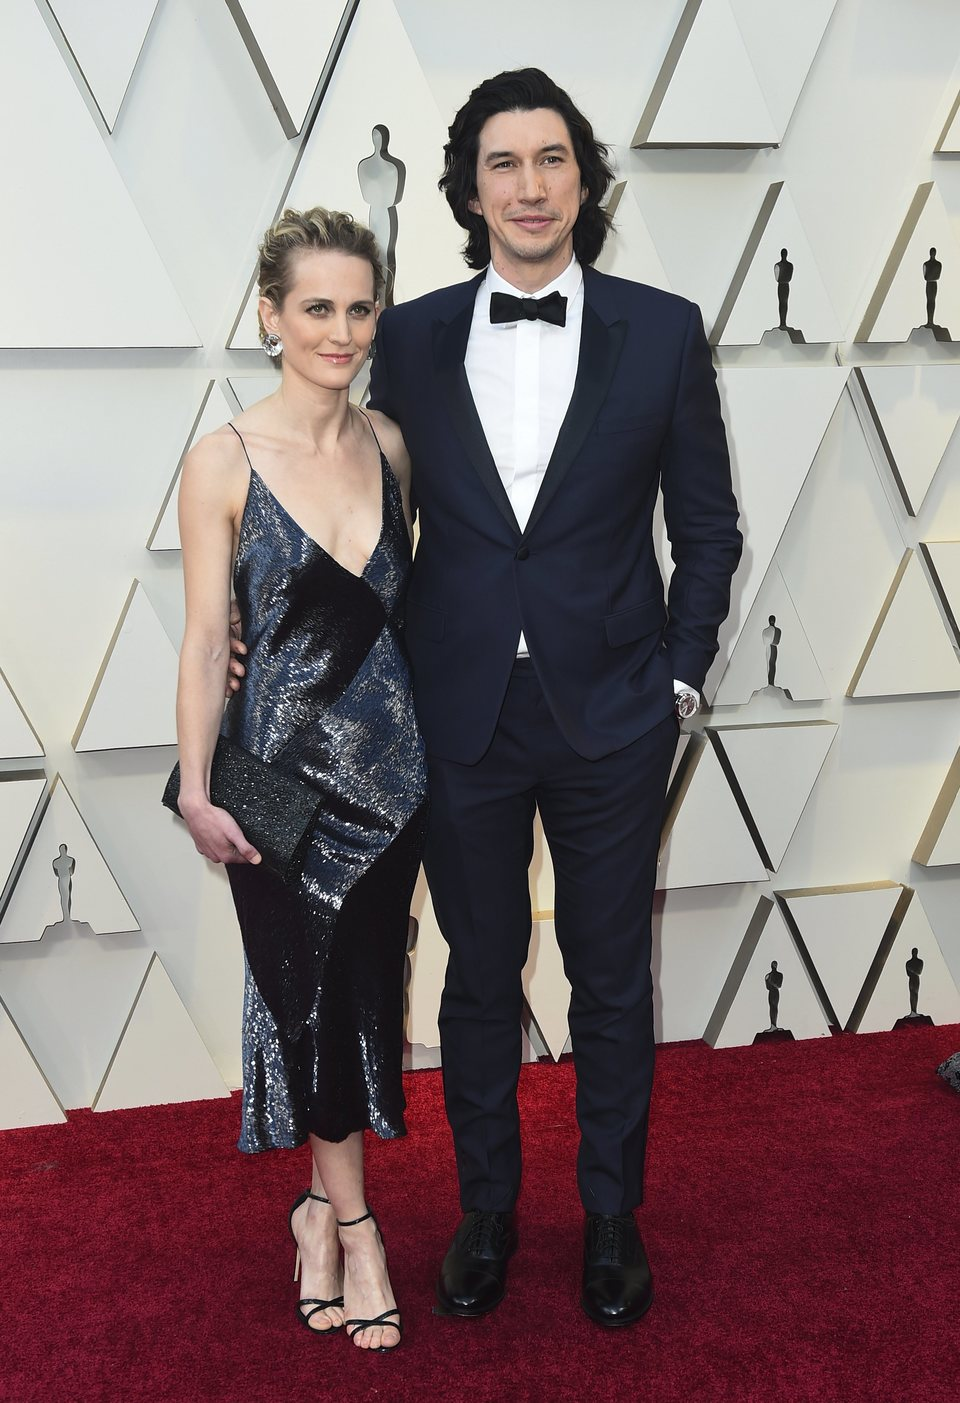 Adam Driver and Joanne Tucker on the red carpet at the Oscars 2019